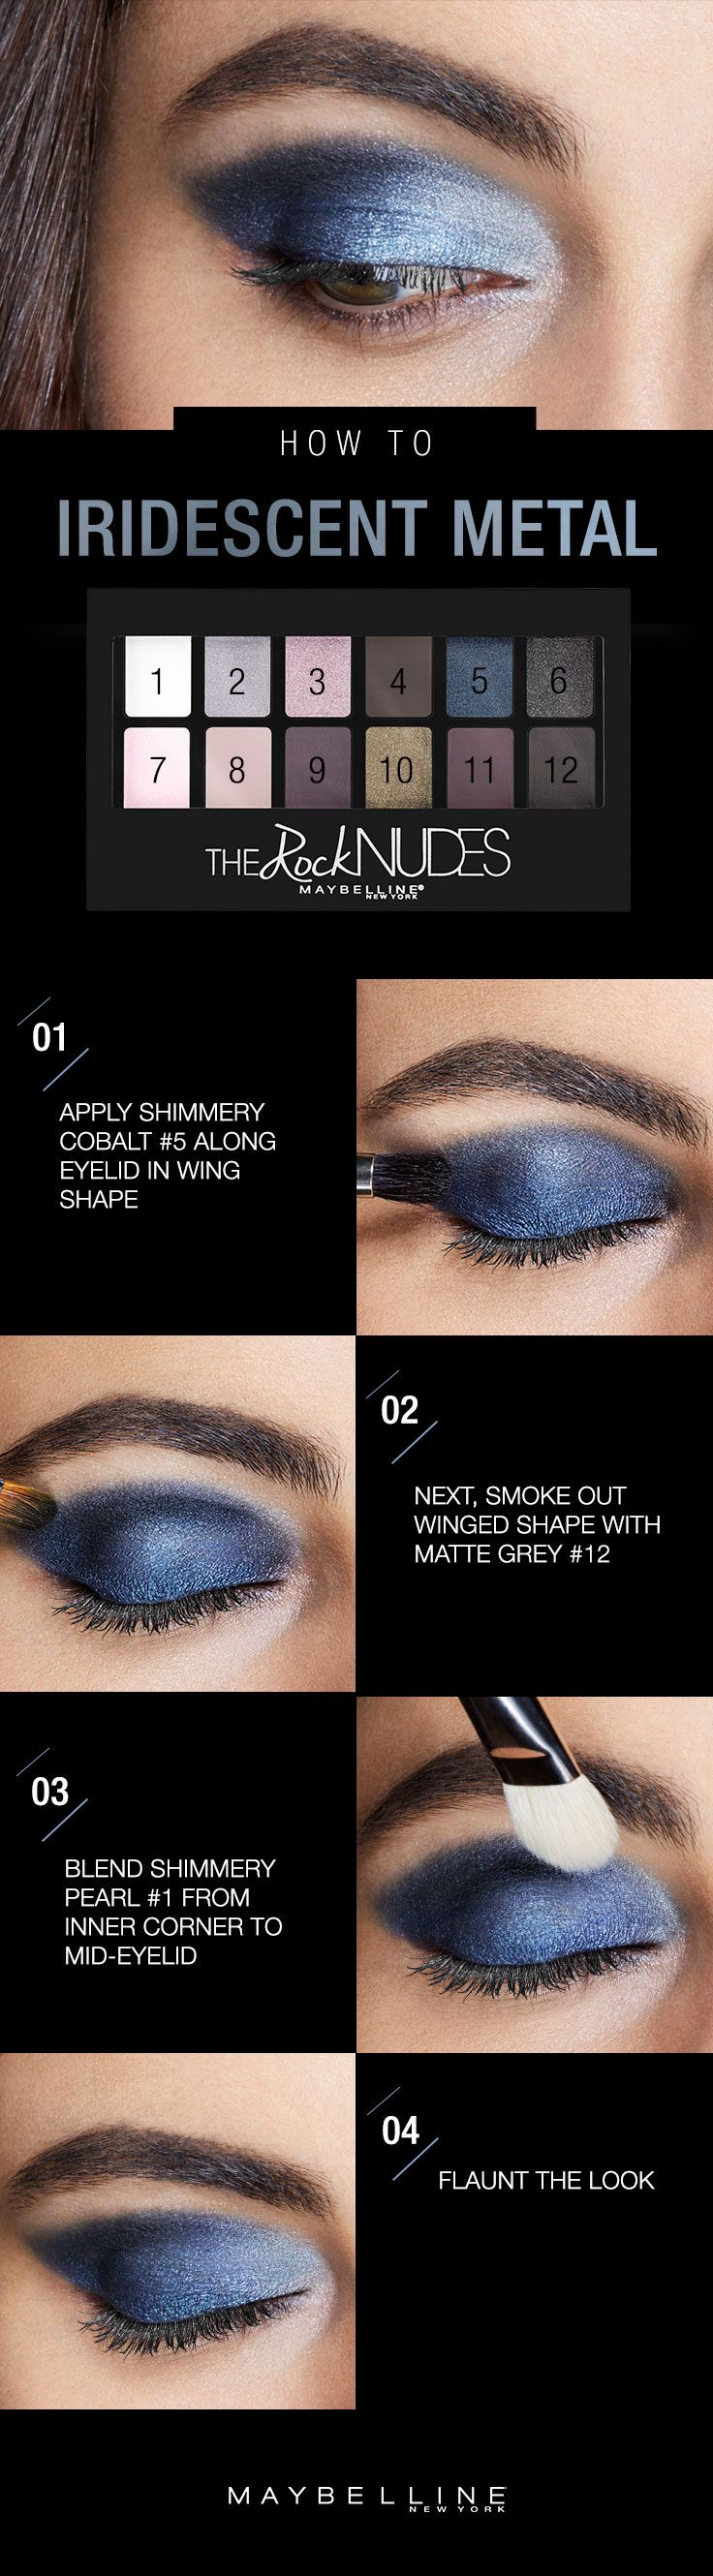 The 4th of July weekend calls for a blue smokey eye look (gotta rep that flag, of course). To rock this iridescent metal eyeshadow look, grab the new Maybelline Rock Nudes palette and apply shimmery cobalt blue along your lid from the inner to outer corner, forming a subtle winged shape. Draw out the shape, making it a bit smoky with matte grey, then highlight and blend with shimmery pearl.